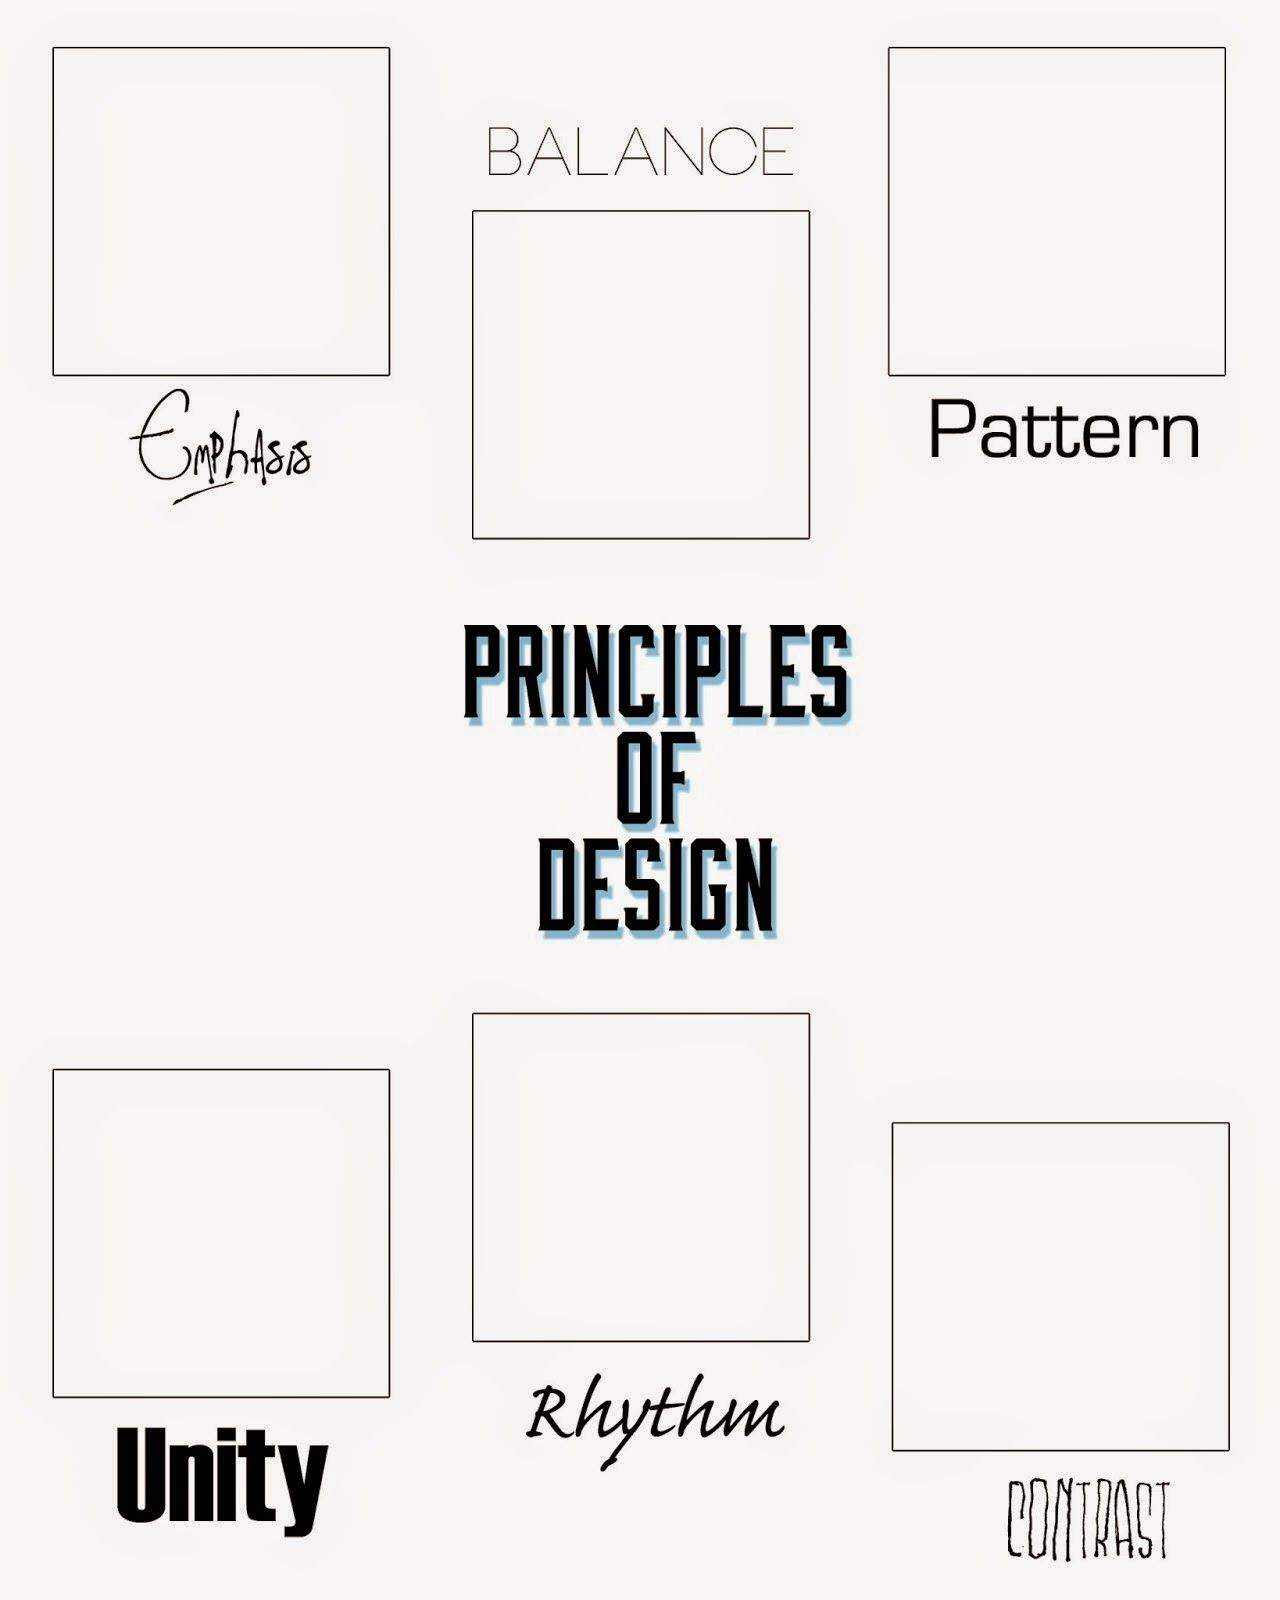 elements of design worksheet wiildcreative. Black Bedroom Furniture Sets. Home Design Ideas